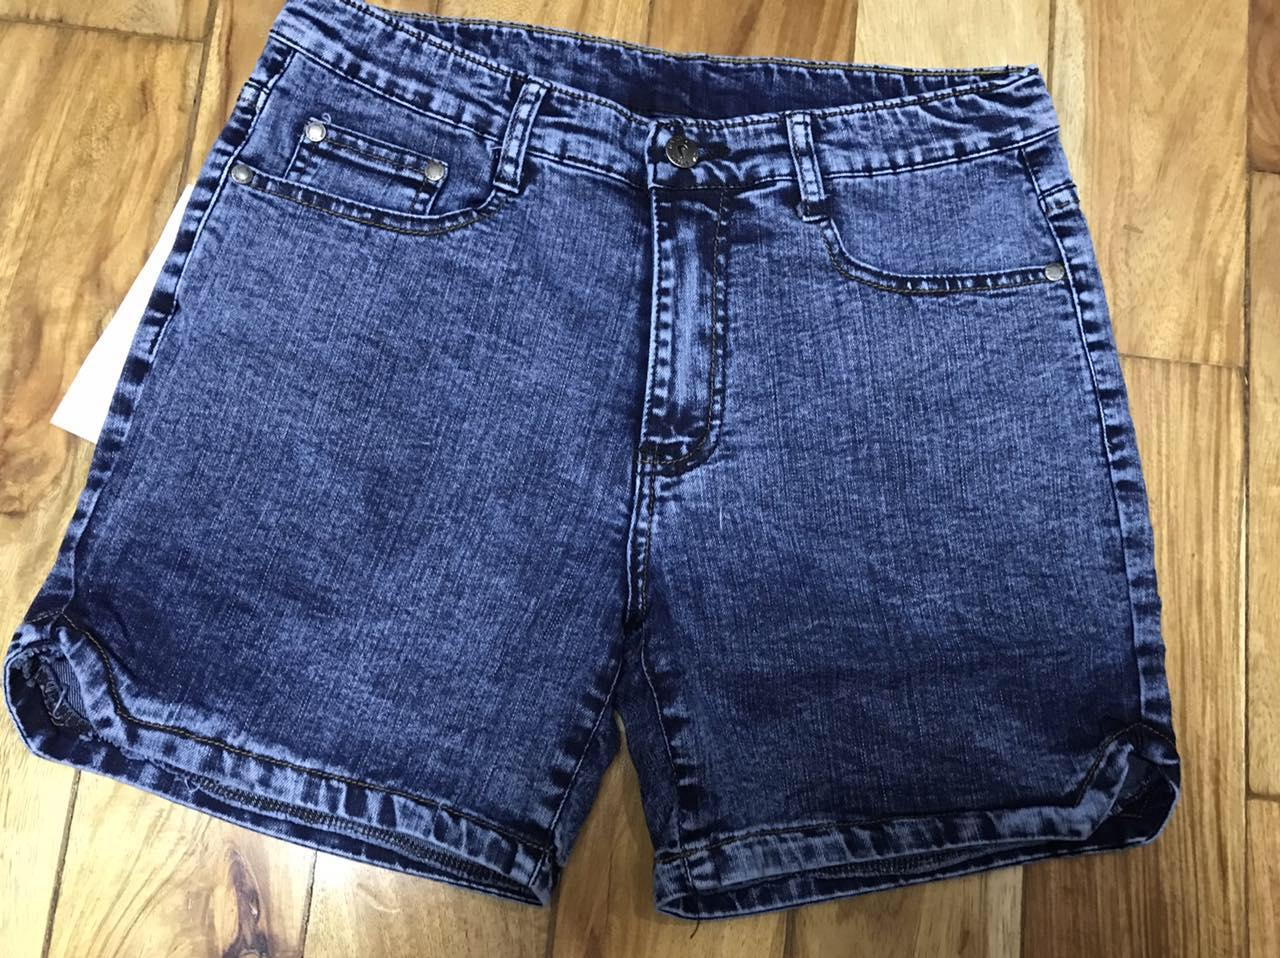 The Cheapest Price 2018 Hot Sale Summer Fashion Denim Shorts Women Cool Short Pants High Waist Jeans Plus Size 34 High Quality Shorts Women's Clothing